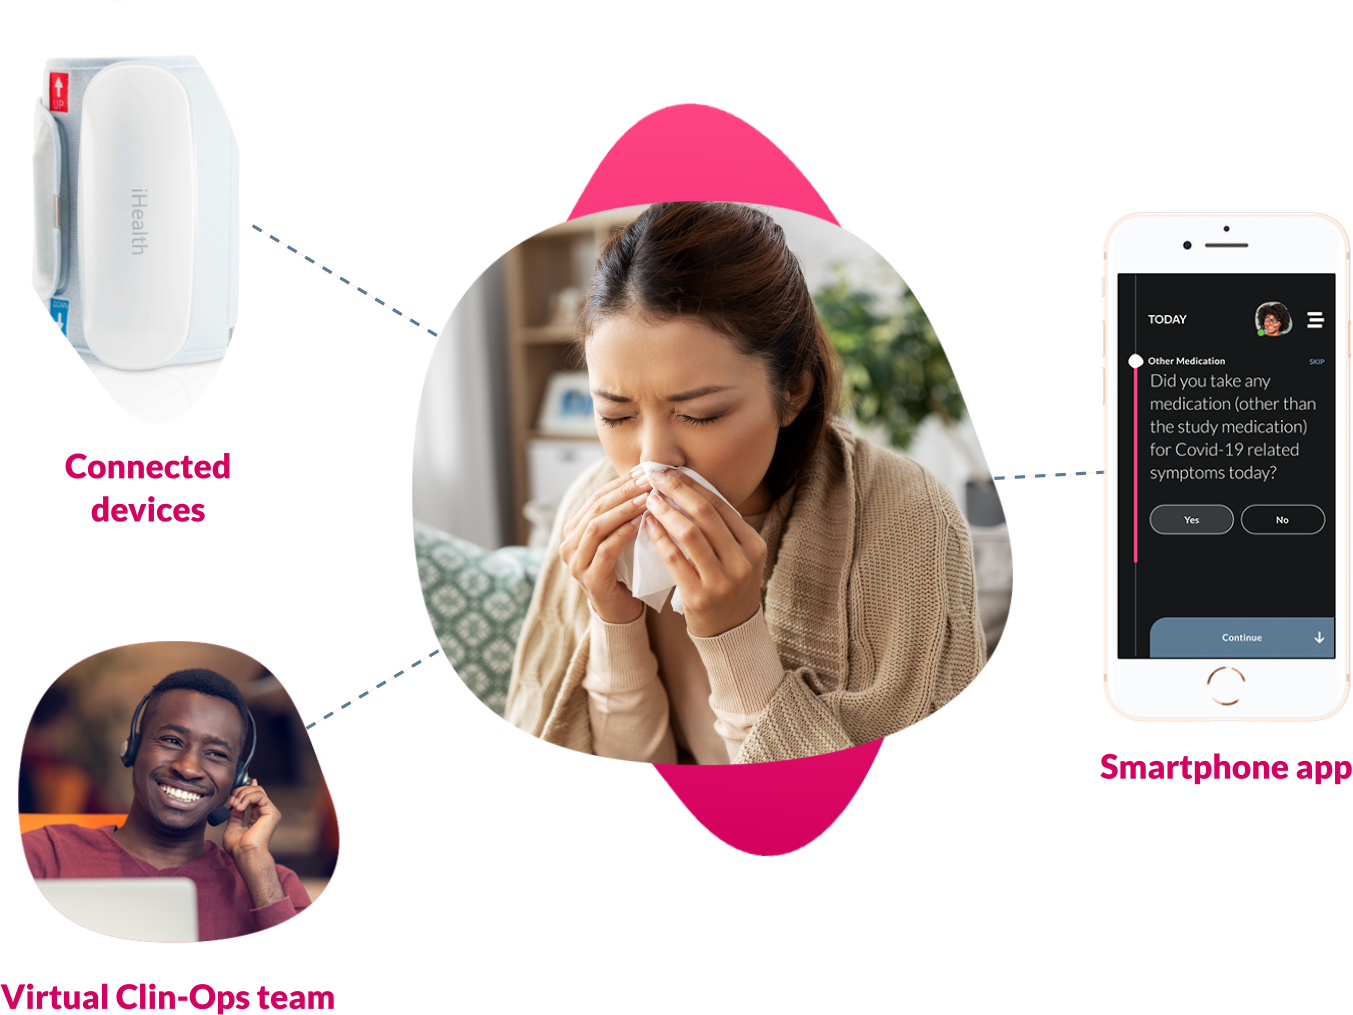 A graphic showing the various components used for remote patient monitoring in ObvioHealth's studies: connected devices, virtual clin-ops team, and the smartphone app.